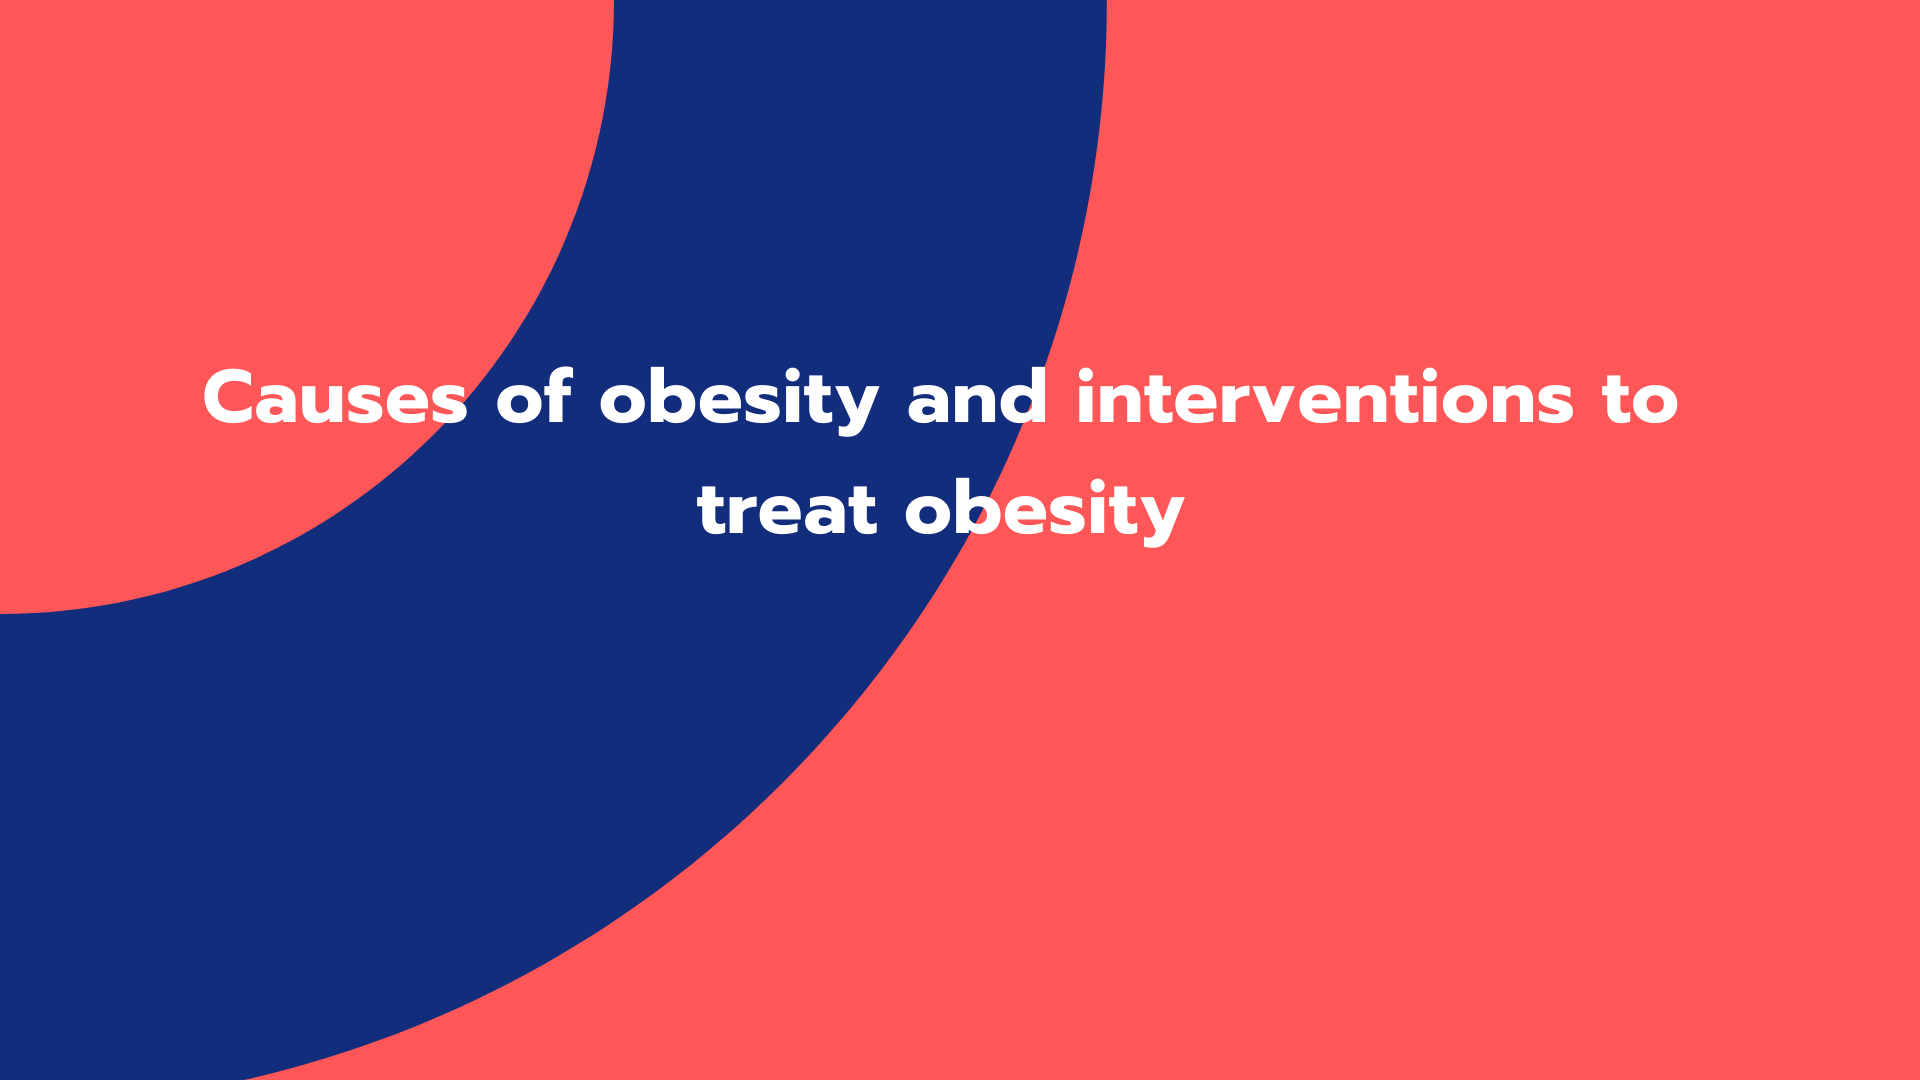 Causes of obesity and interventions to treat obesity